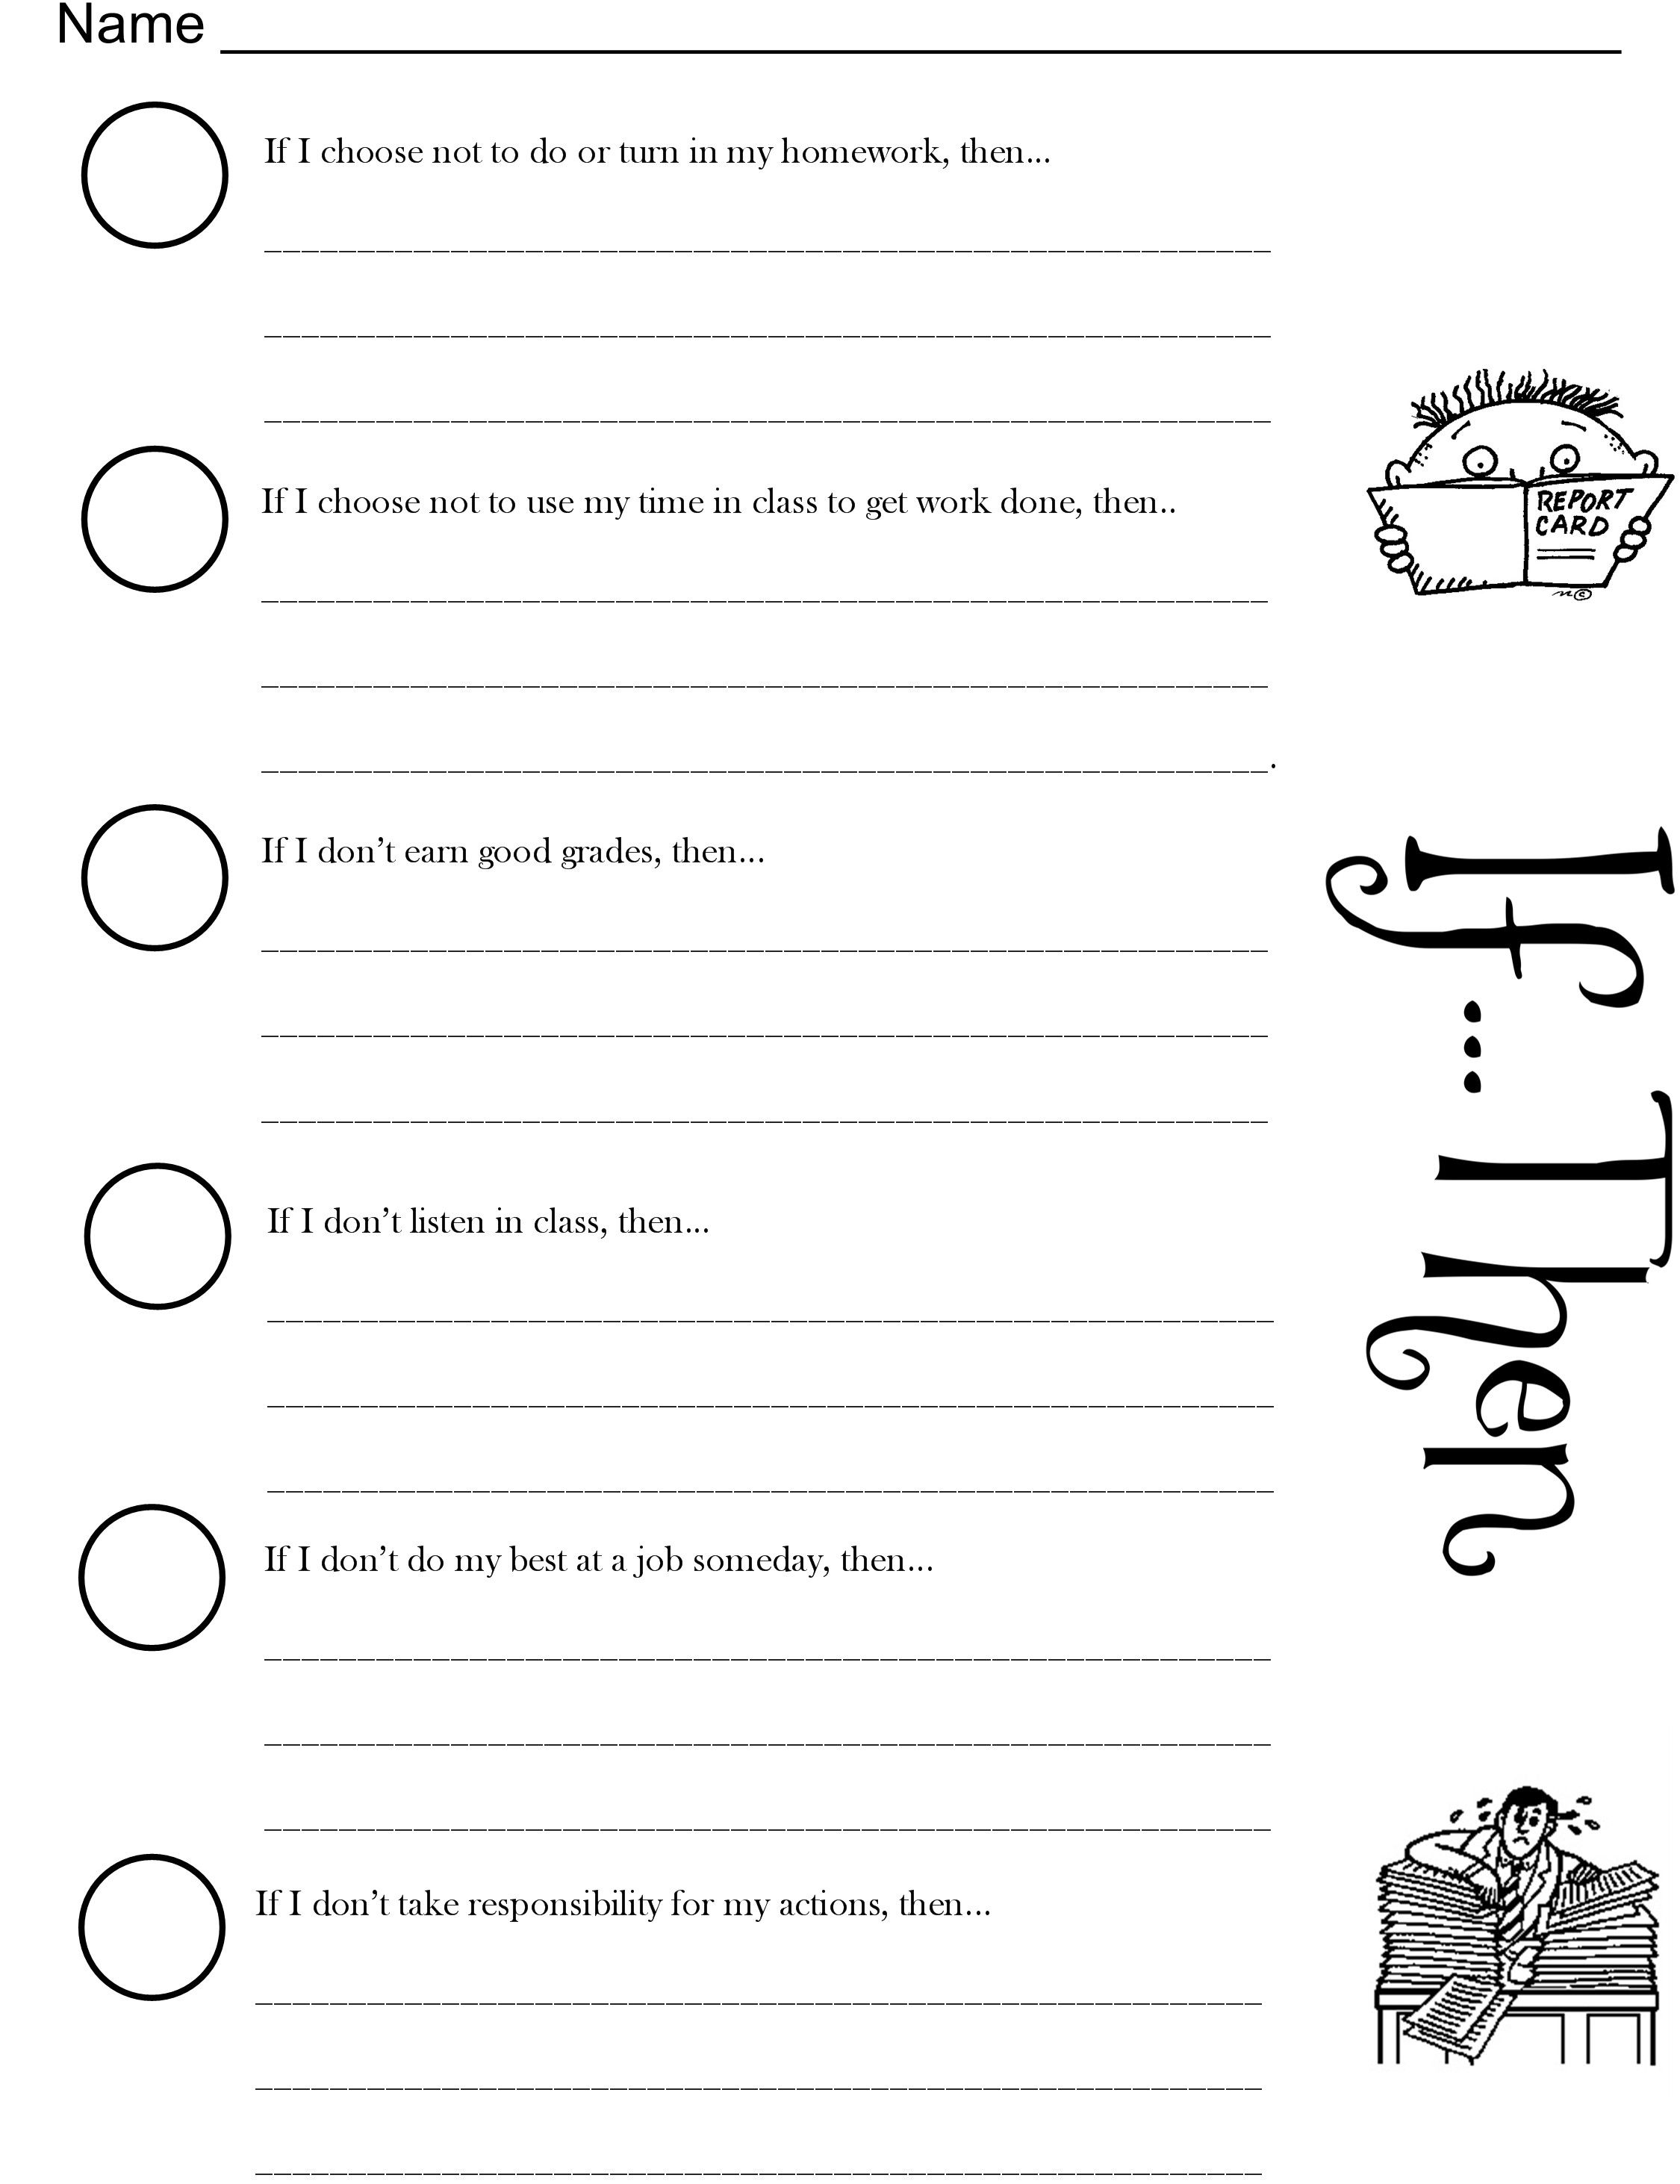 Worksheet For If En Understanding Consequences Academic Domain Lesson Students Will